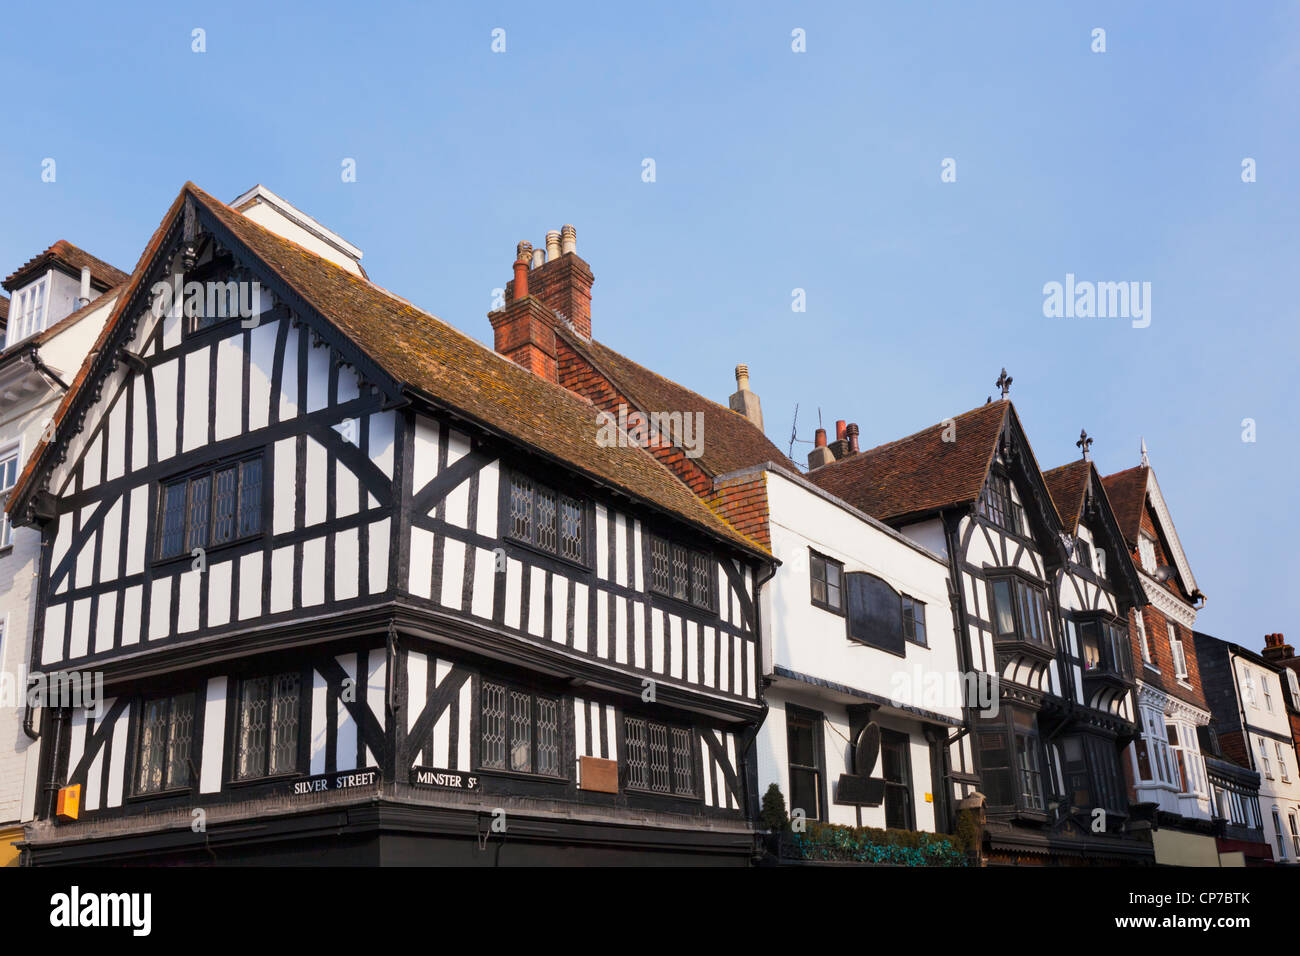 Old half timbered buildings on the corner of Silver Street and Minster Street in the city of Salisbury, Wiltshire, - Stock Image